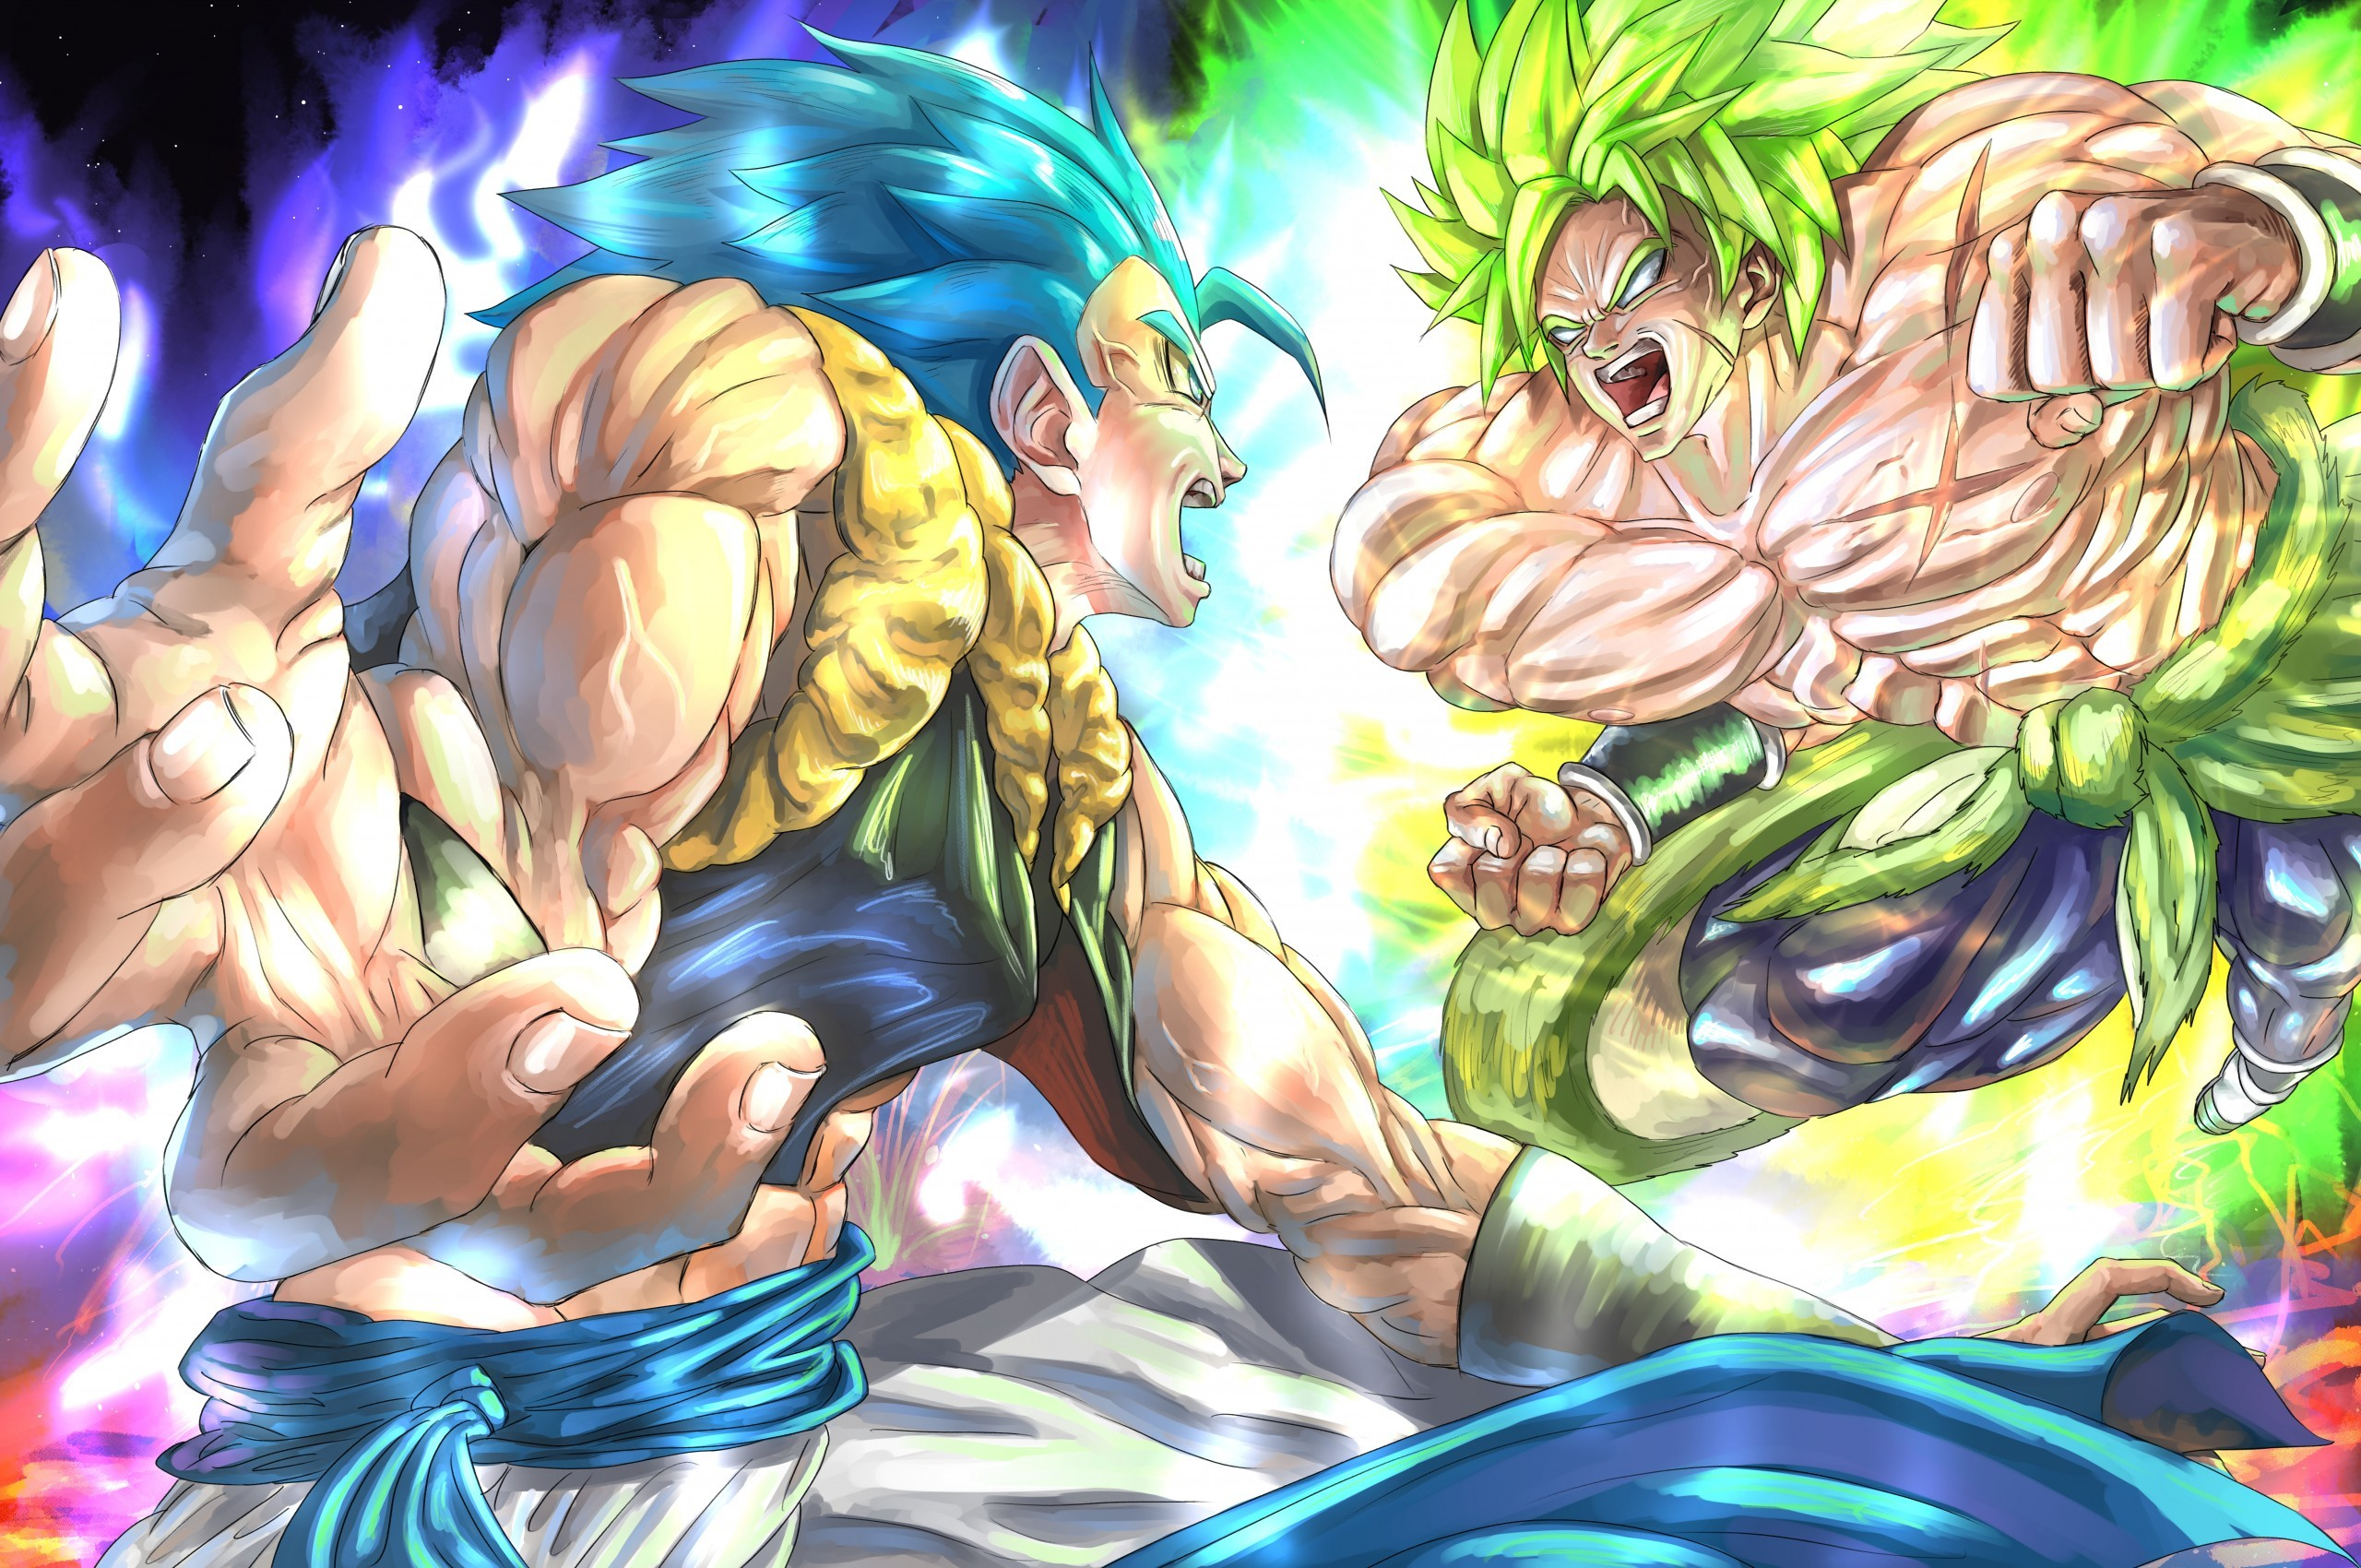 Goku Vs Broly Dragon Ball Super Dragon Ball Super Broly Laptop 2560x1700 Download Hd Wallpaper Wallpapertip